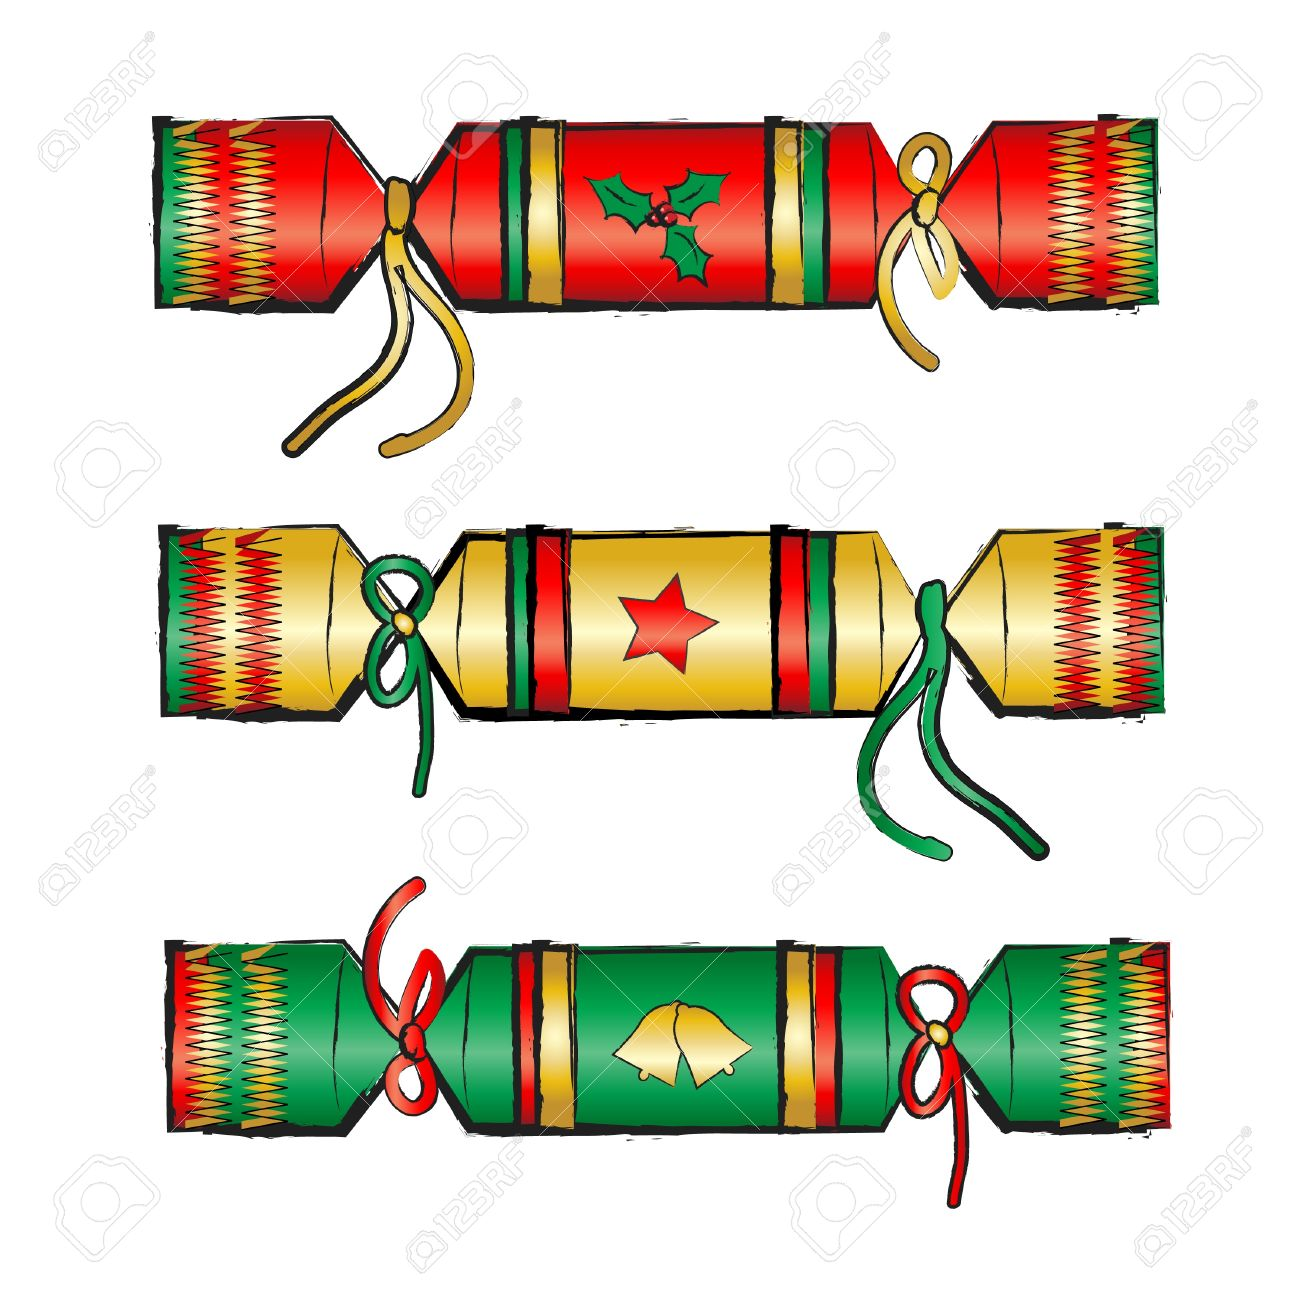 Christmas Crackers Cartoon.Christmas Crackers Isolated On White Sketch Style Eps10 Vector